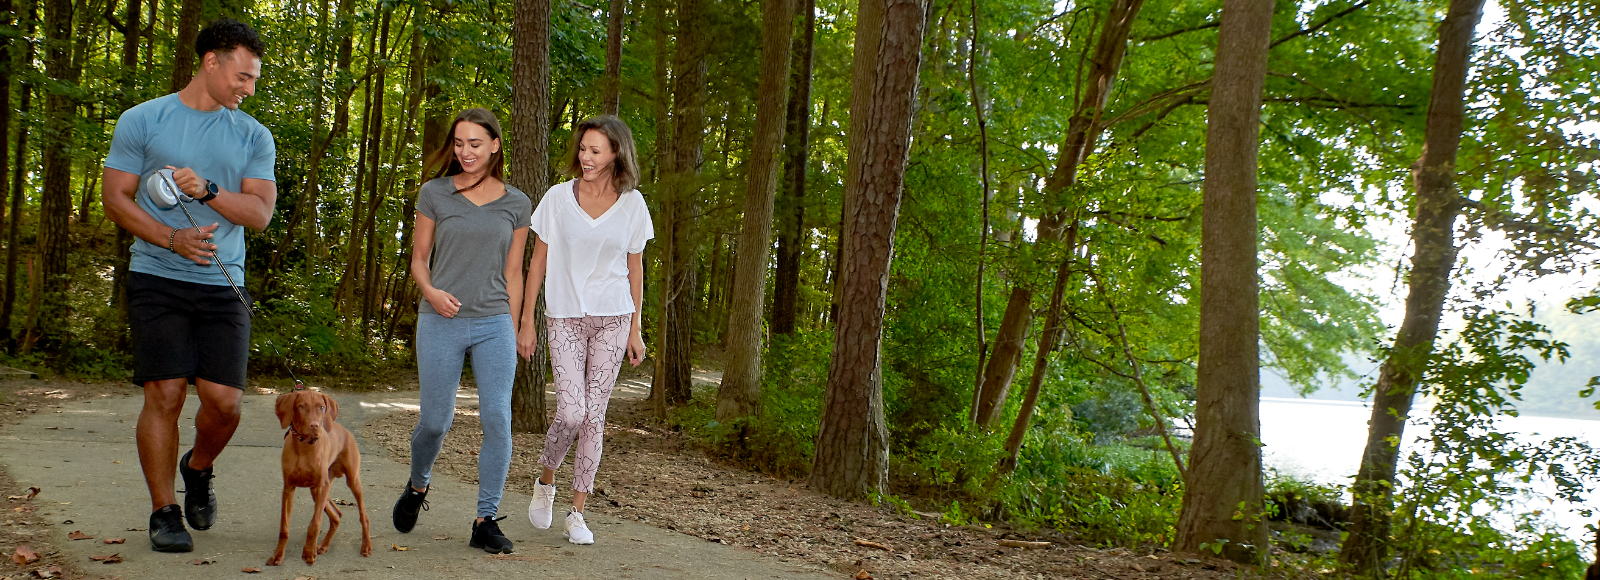 A man walks his dog alongside two women on a forest trail while wearing Sof Sole® comfort socks.